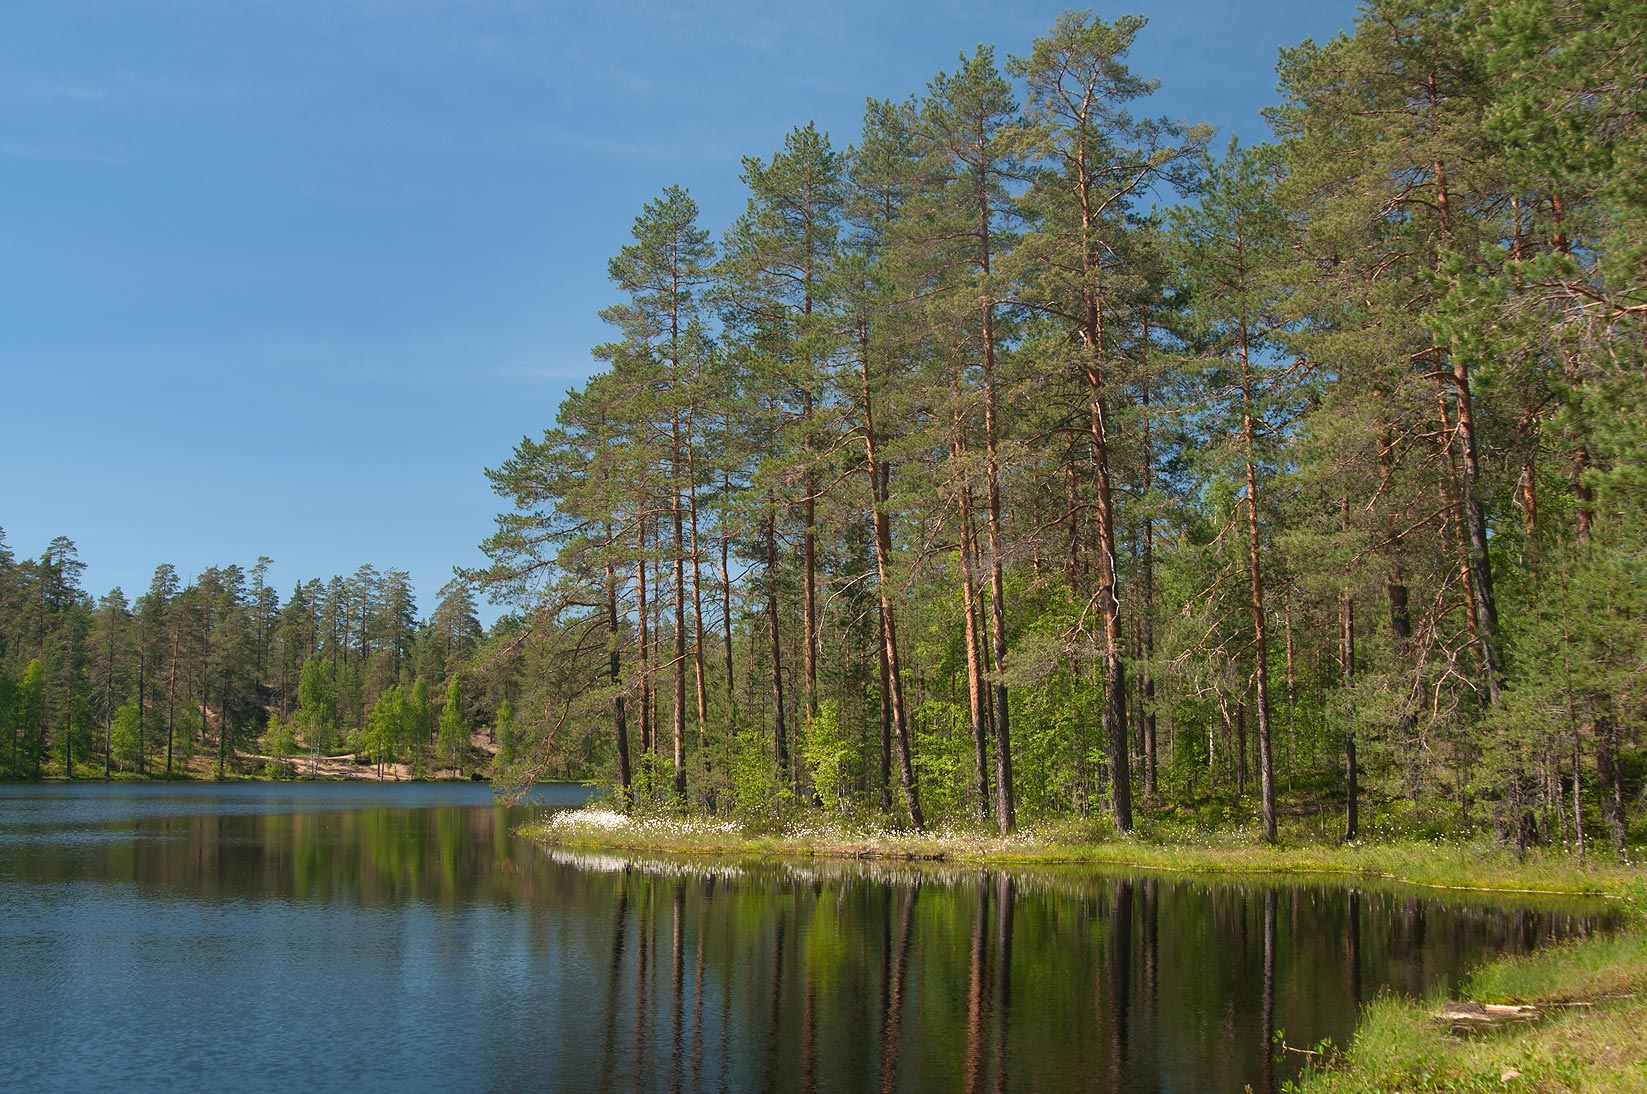 Verkholino (Figurnoe, Likolampi) Lake in pine...miles north from St.Petersburg. Russia